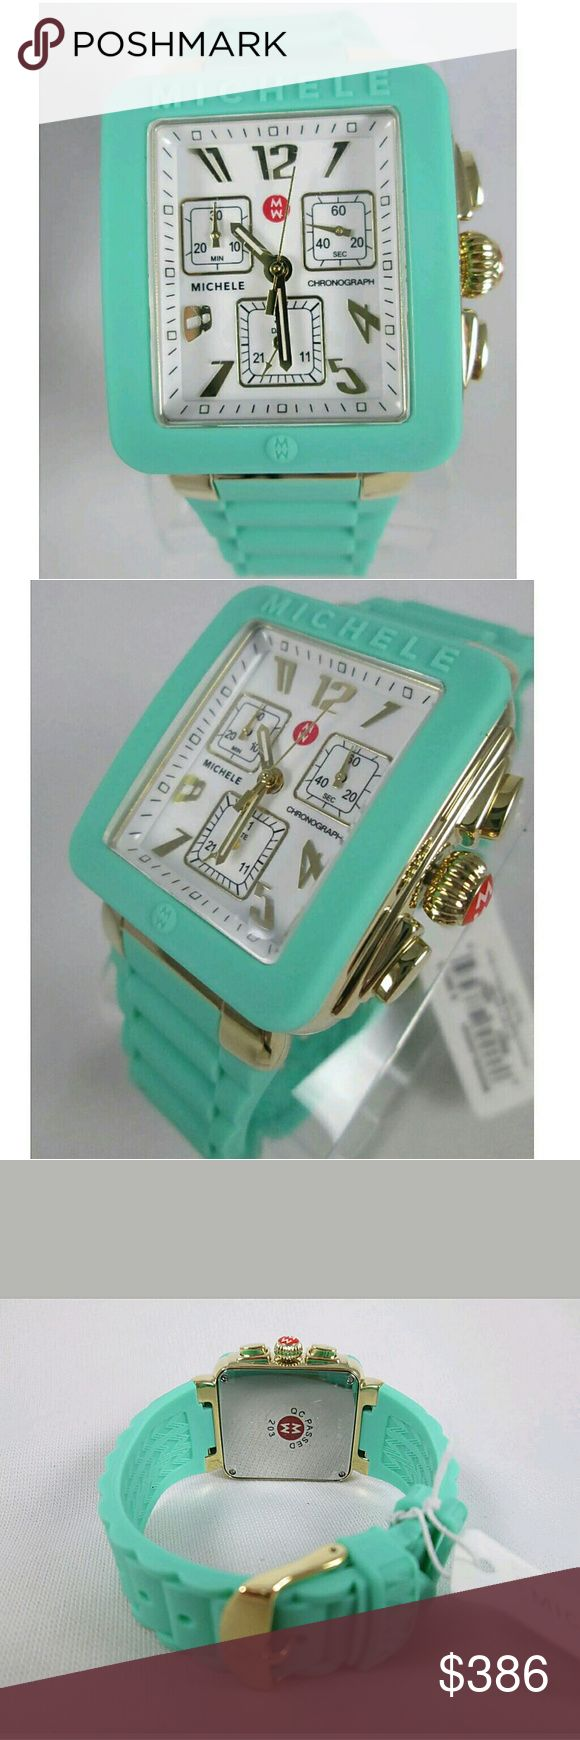 NWT Michele Seafoam and gold ladies watch Brand New In Box Michele Silicone Band ladies watch.   FRIM PRICE FIRM PRICE FIRM  $386.00 . AUTHENTIC WATCH  . AUTHENTIC BOX . AUTHENTIC MANUAL    SHIPPING  PLEASE ALLOW FEW BUSINESS DAYS FOR ME TO SHIPPED IT OFF.I HAVE TO GET IT FROM MY STORE.    THANK YOU FOR YOUR UNDERSTANDING. Michele  Accessories Watches